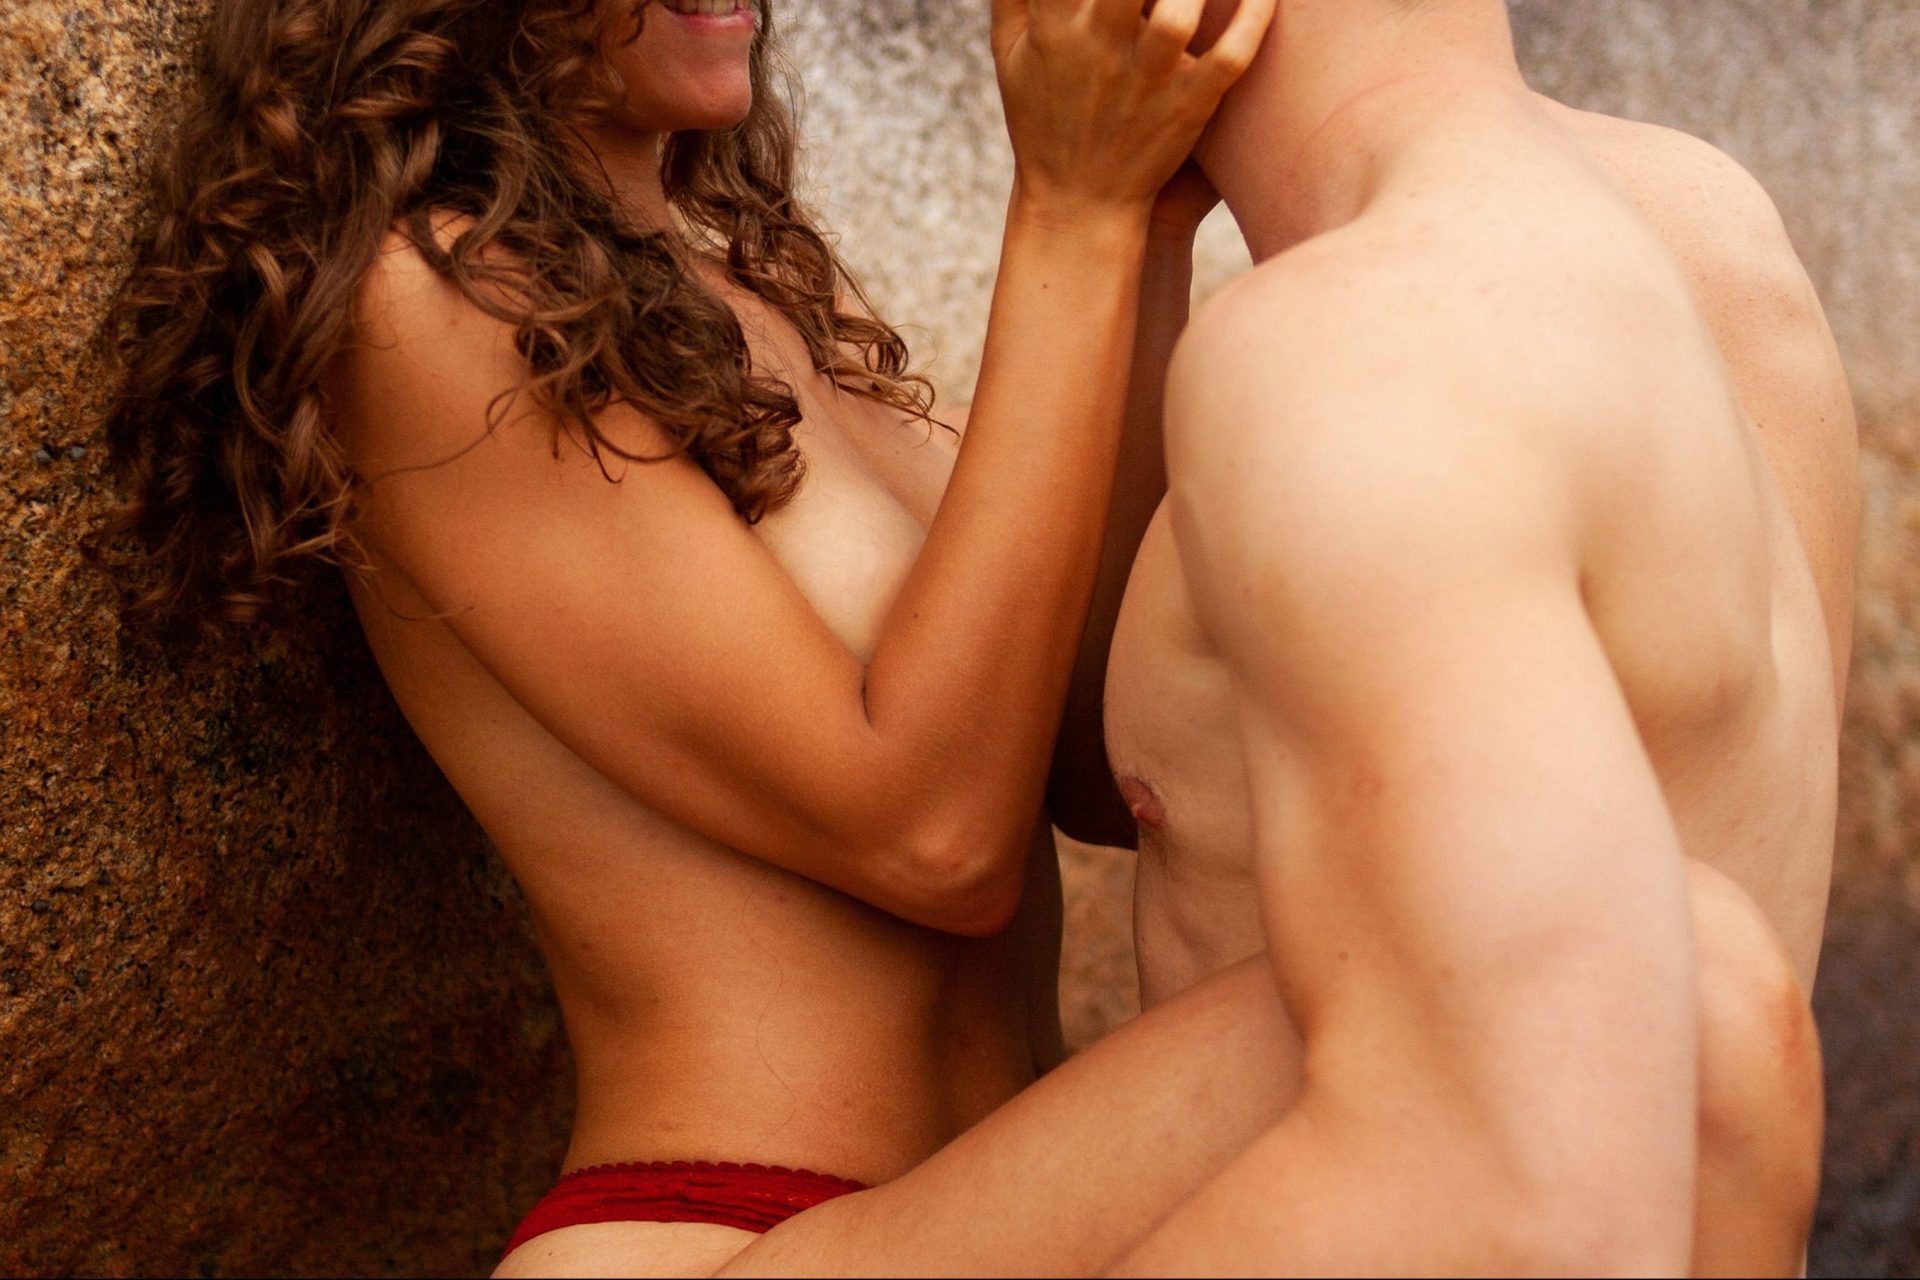 20 Insanely Important Things I Learned About Sex In My 20s